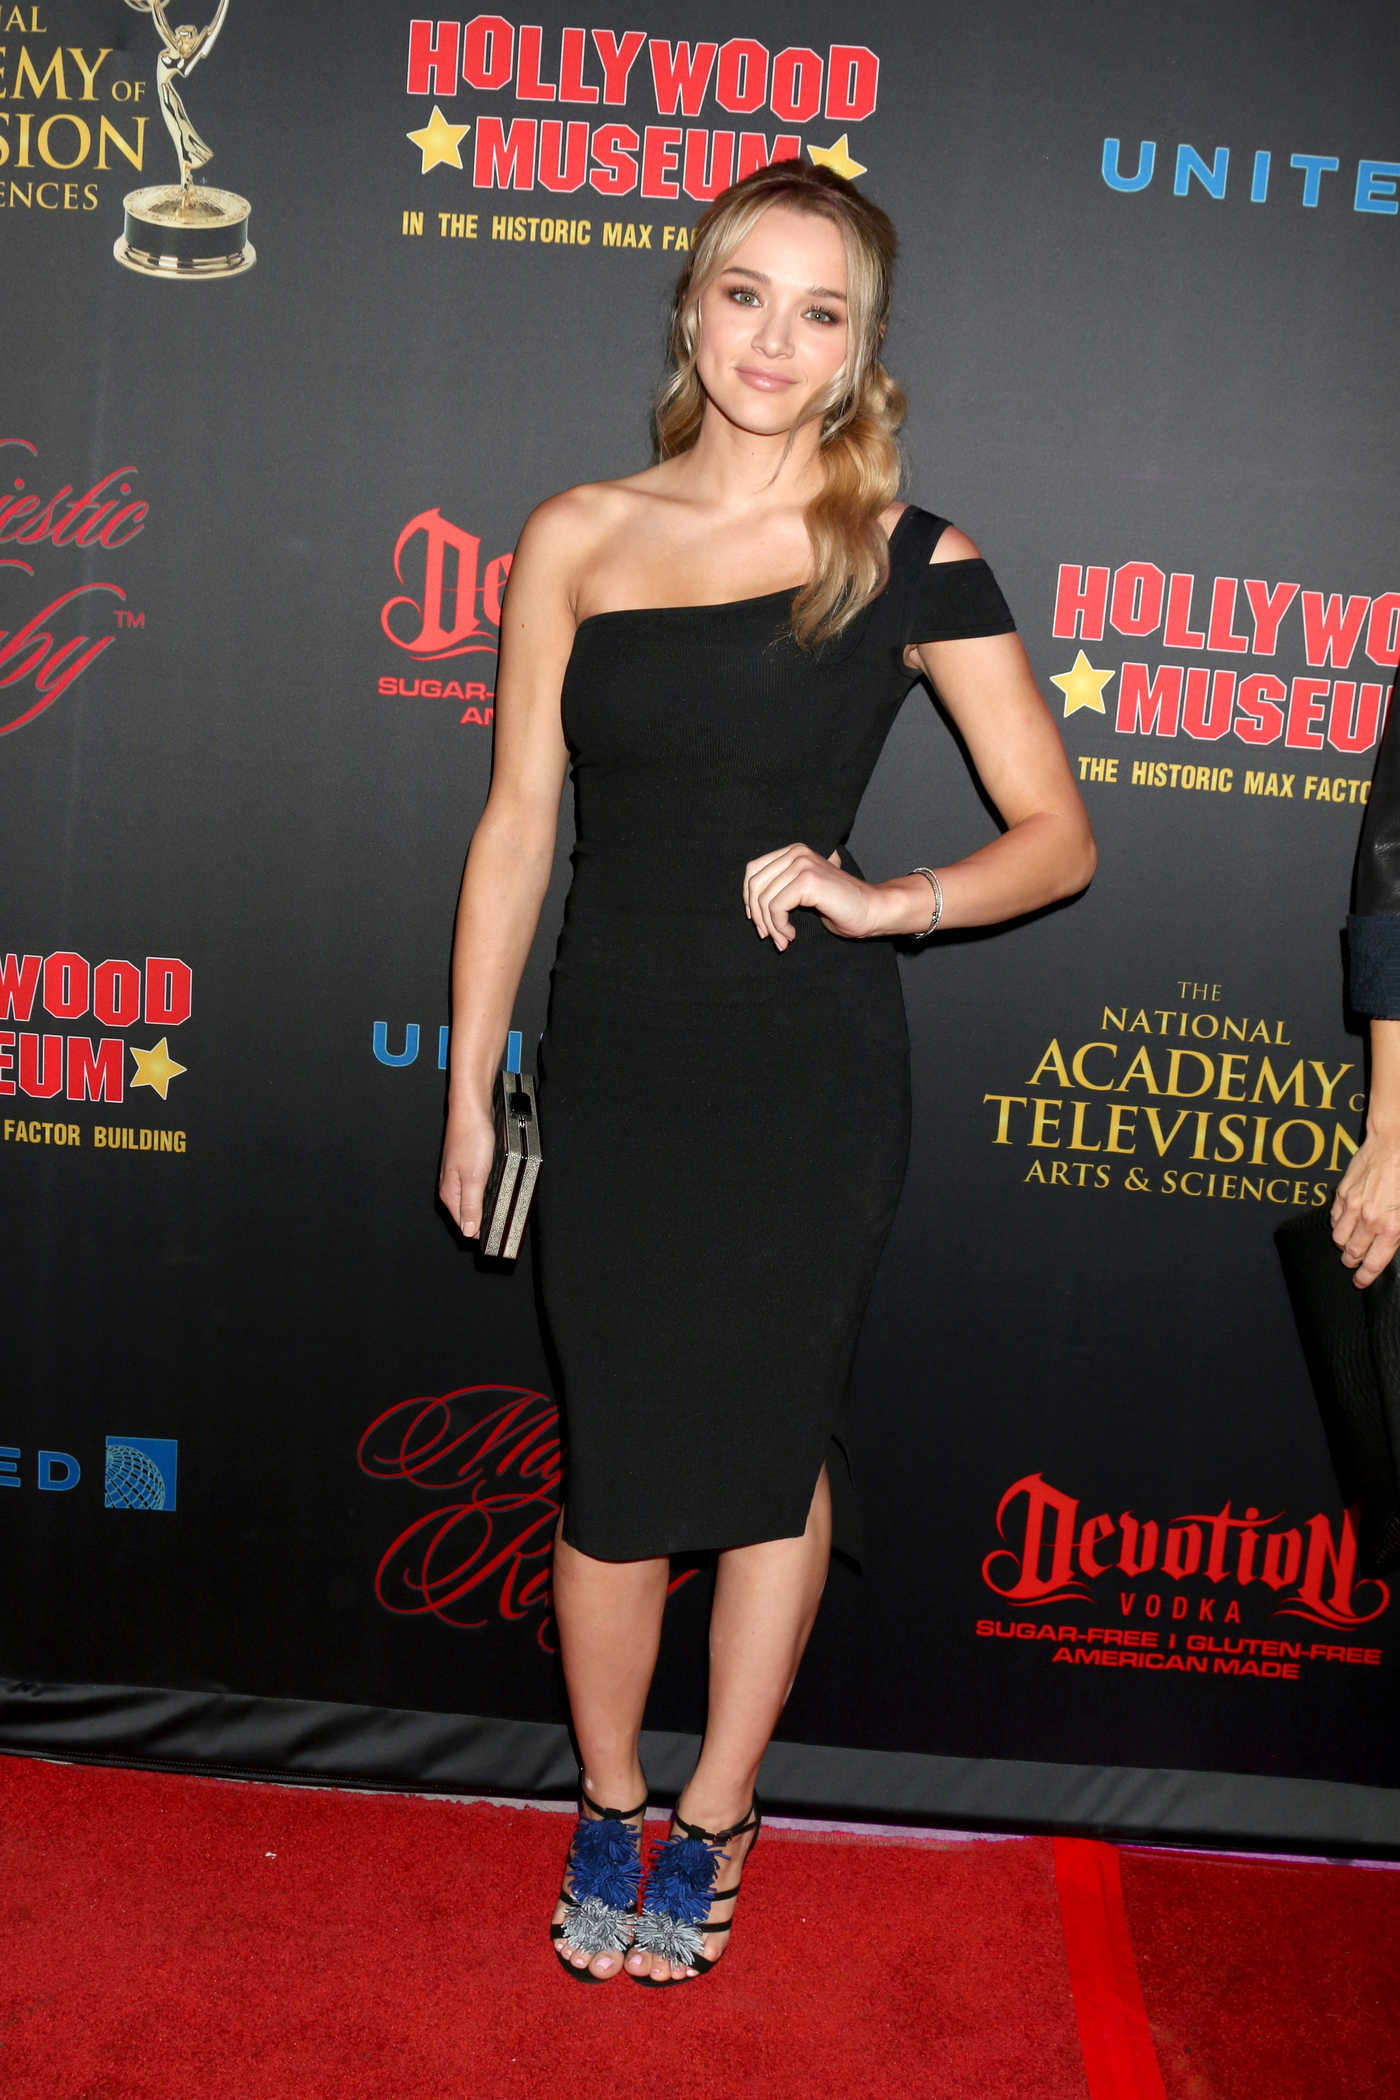 Hunter King Attends the NATAS Daytime Emmy Nominees Reception at the Hollywood Museum in Los Angeles 04/26/2017